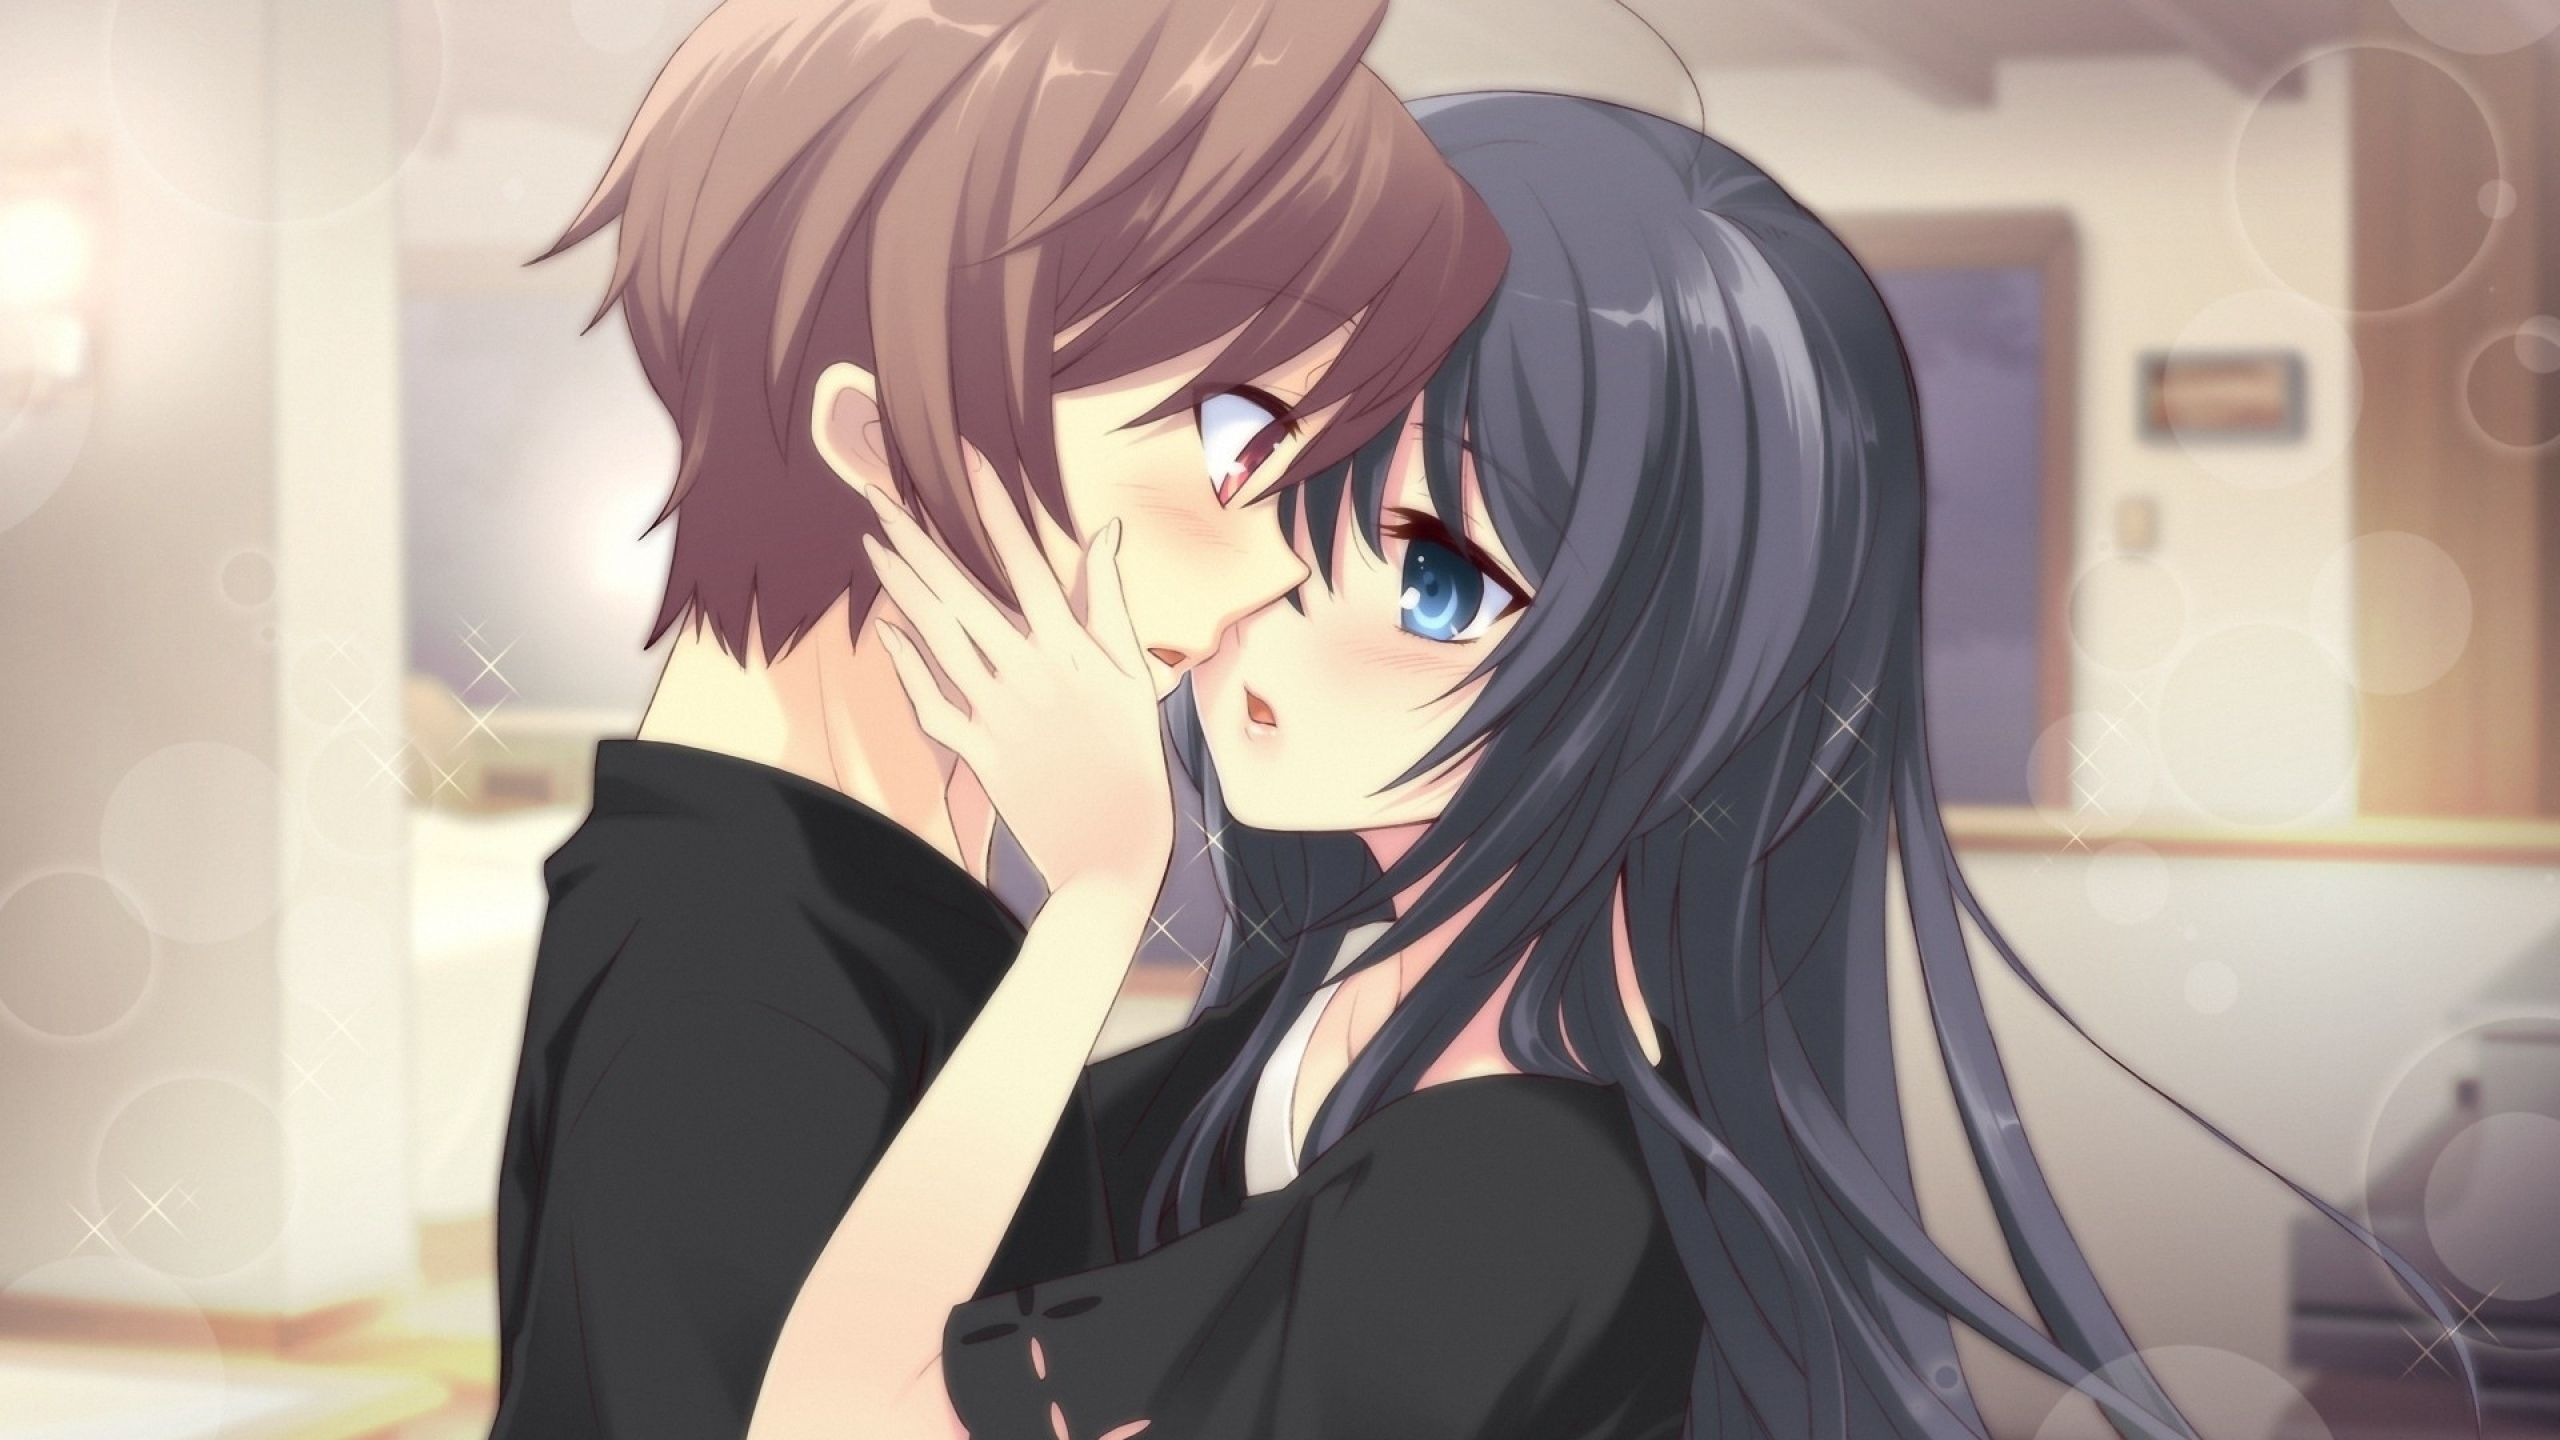 Cute Anime Couple Wallpaper Download Wallpapers 2560x1440